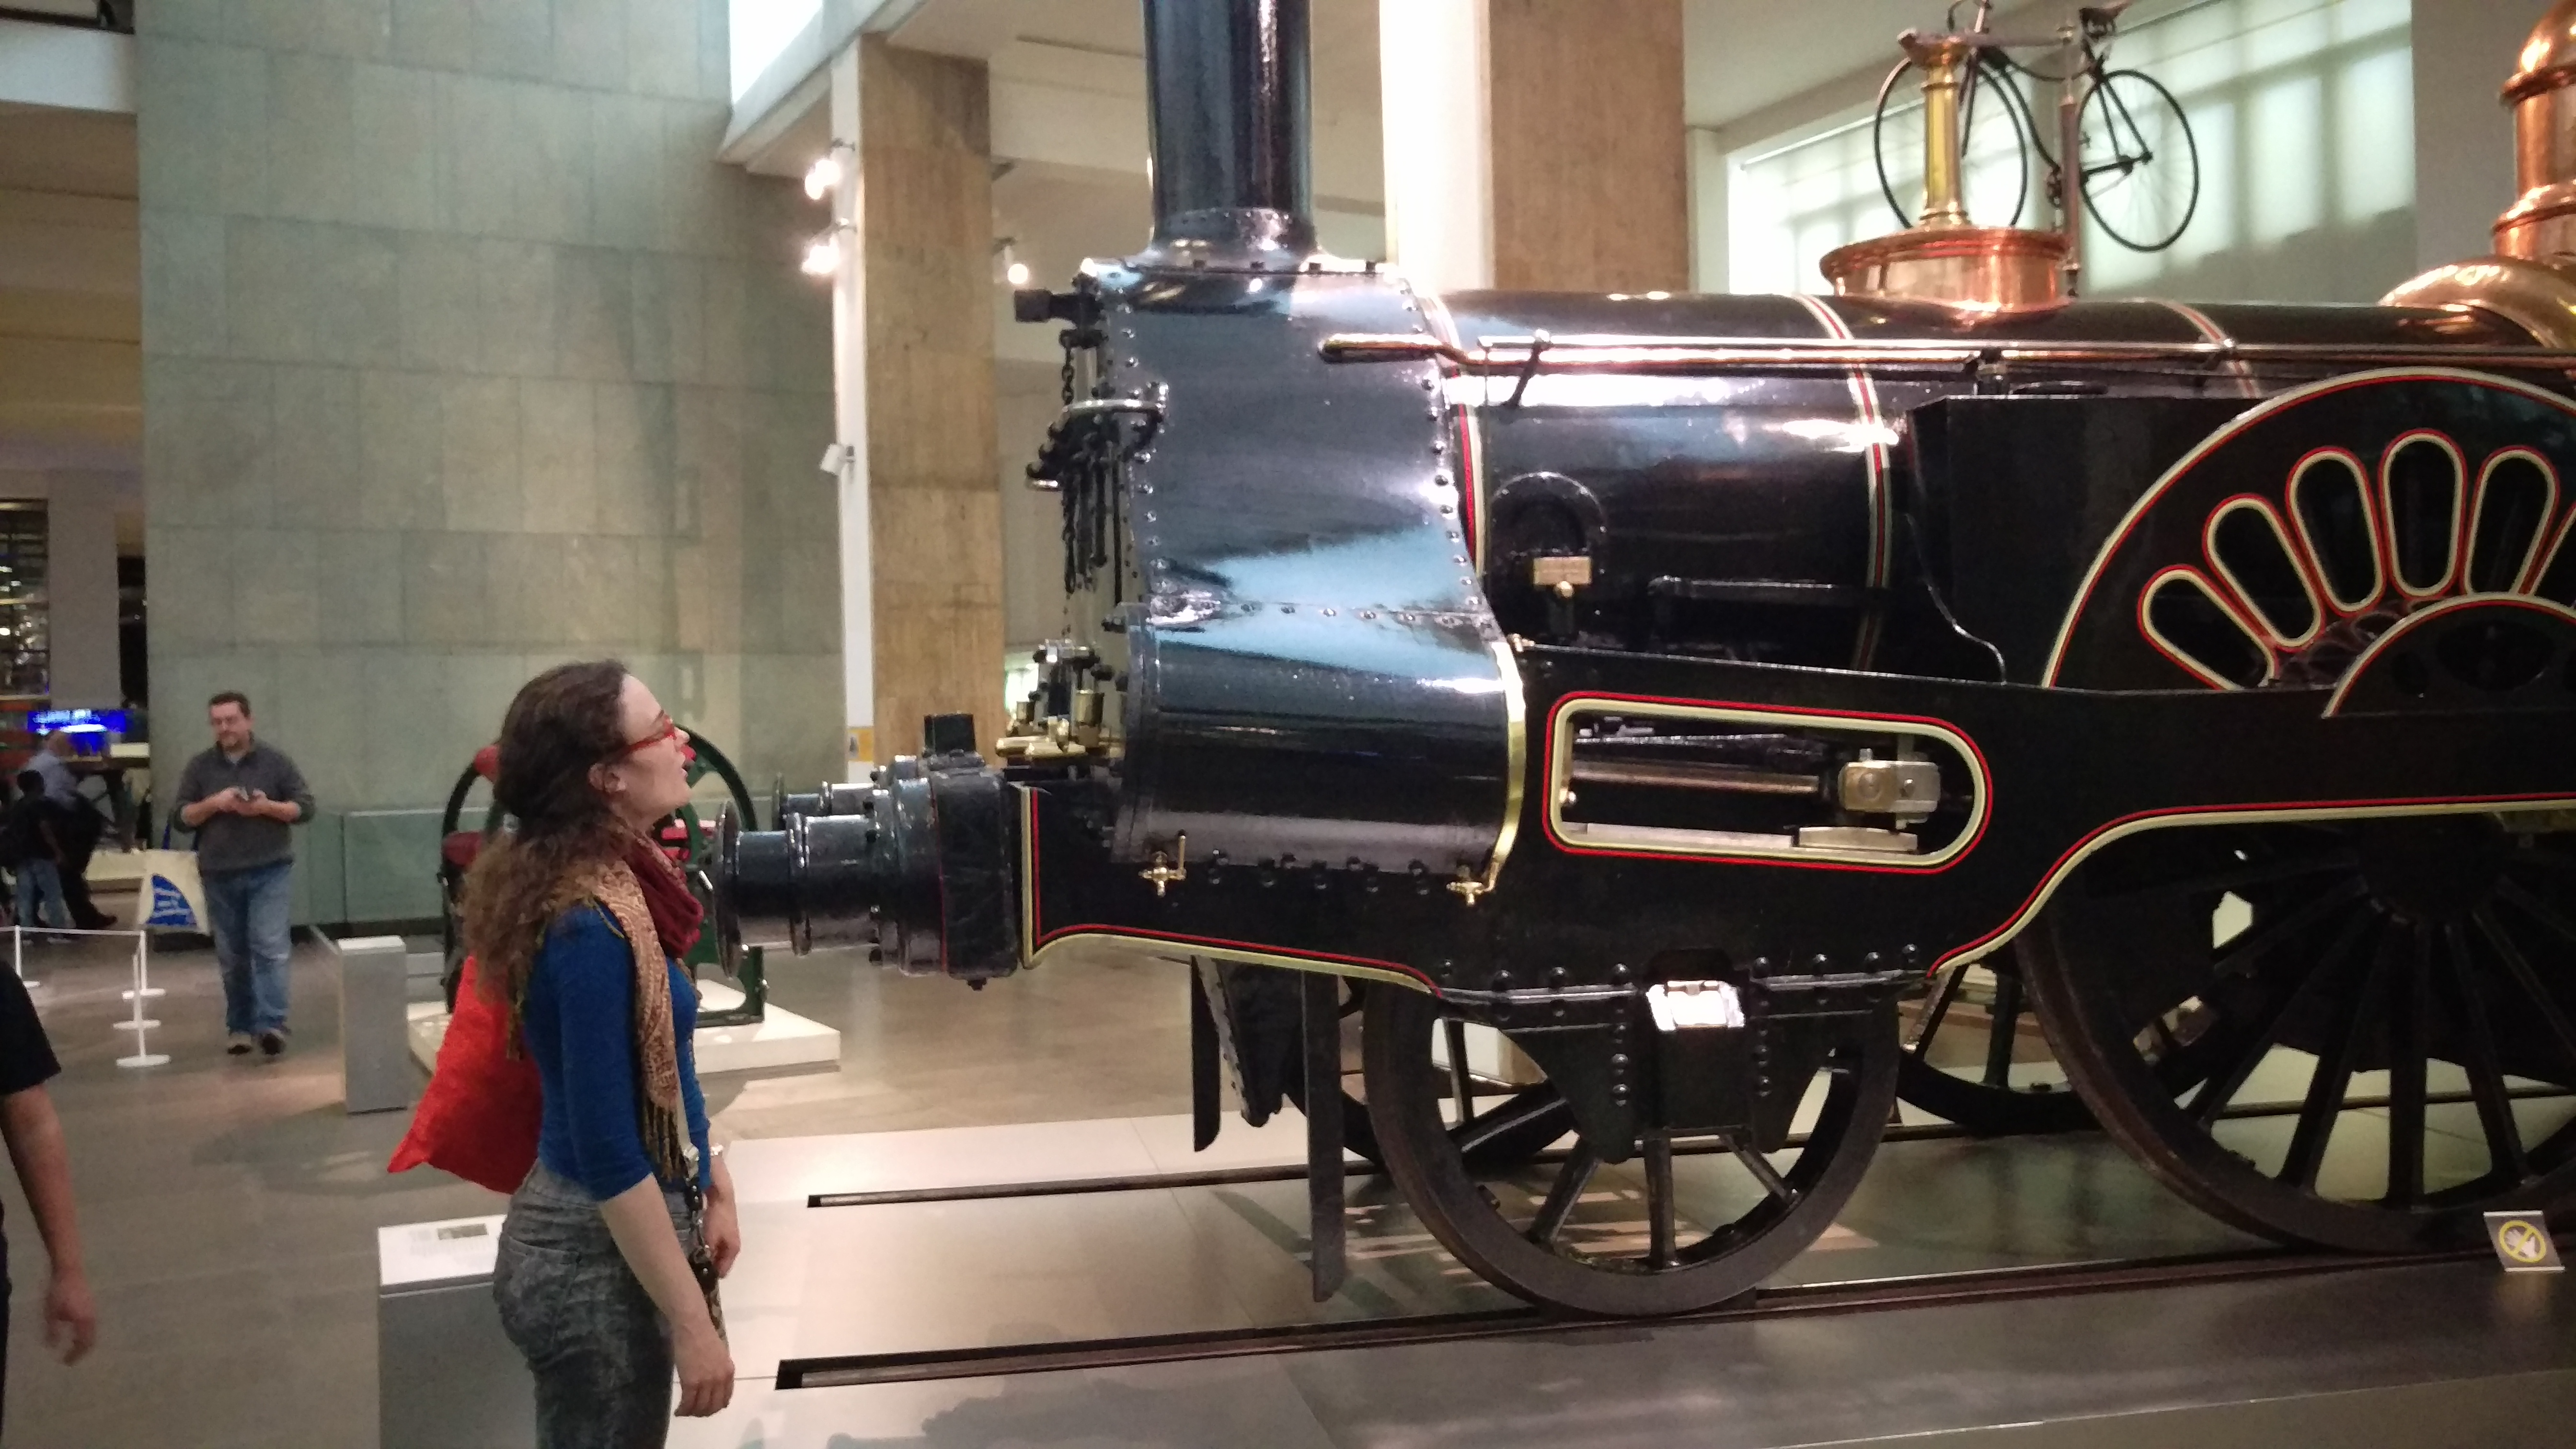 A photo of me, starting with mouth agape at a train from the industrial revolution era in the London Science museum